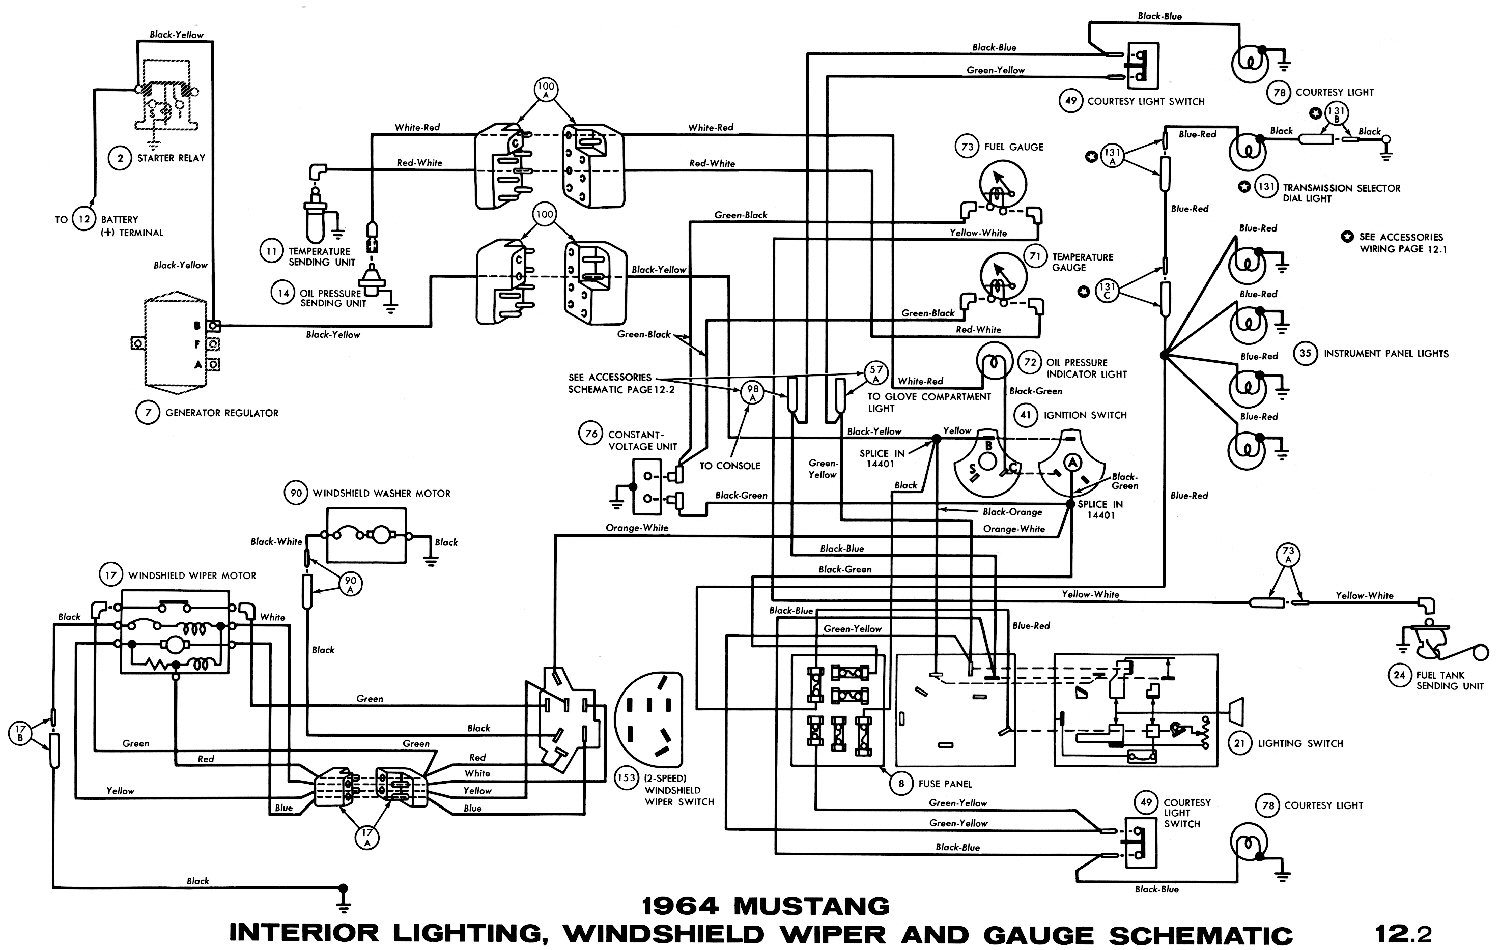 1964 Ford Truck Wiring Diagram On 65 Mustang Lights Lawn Boy 1 2 Diagrams